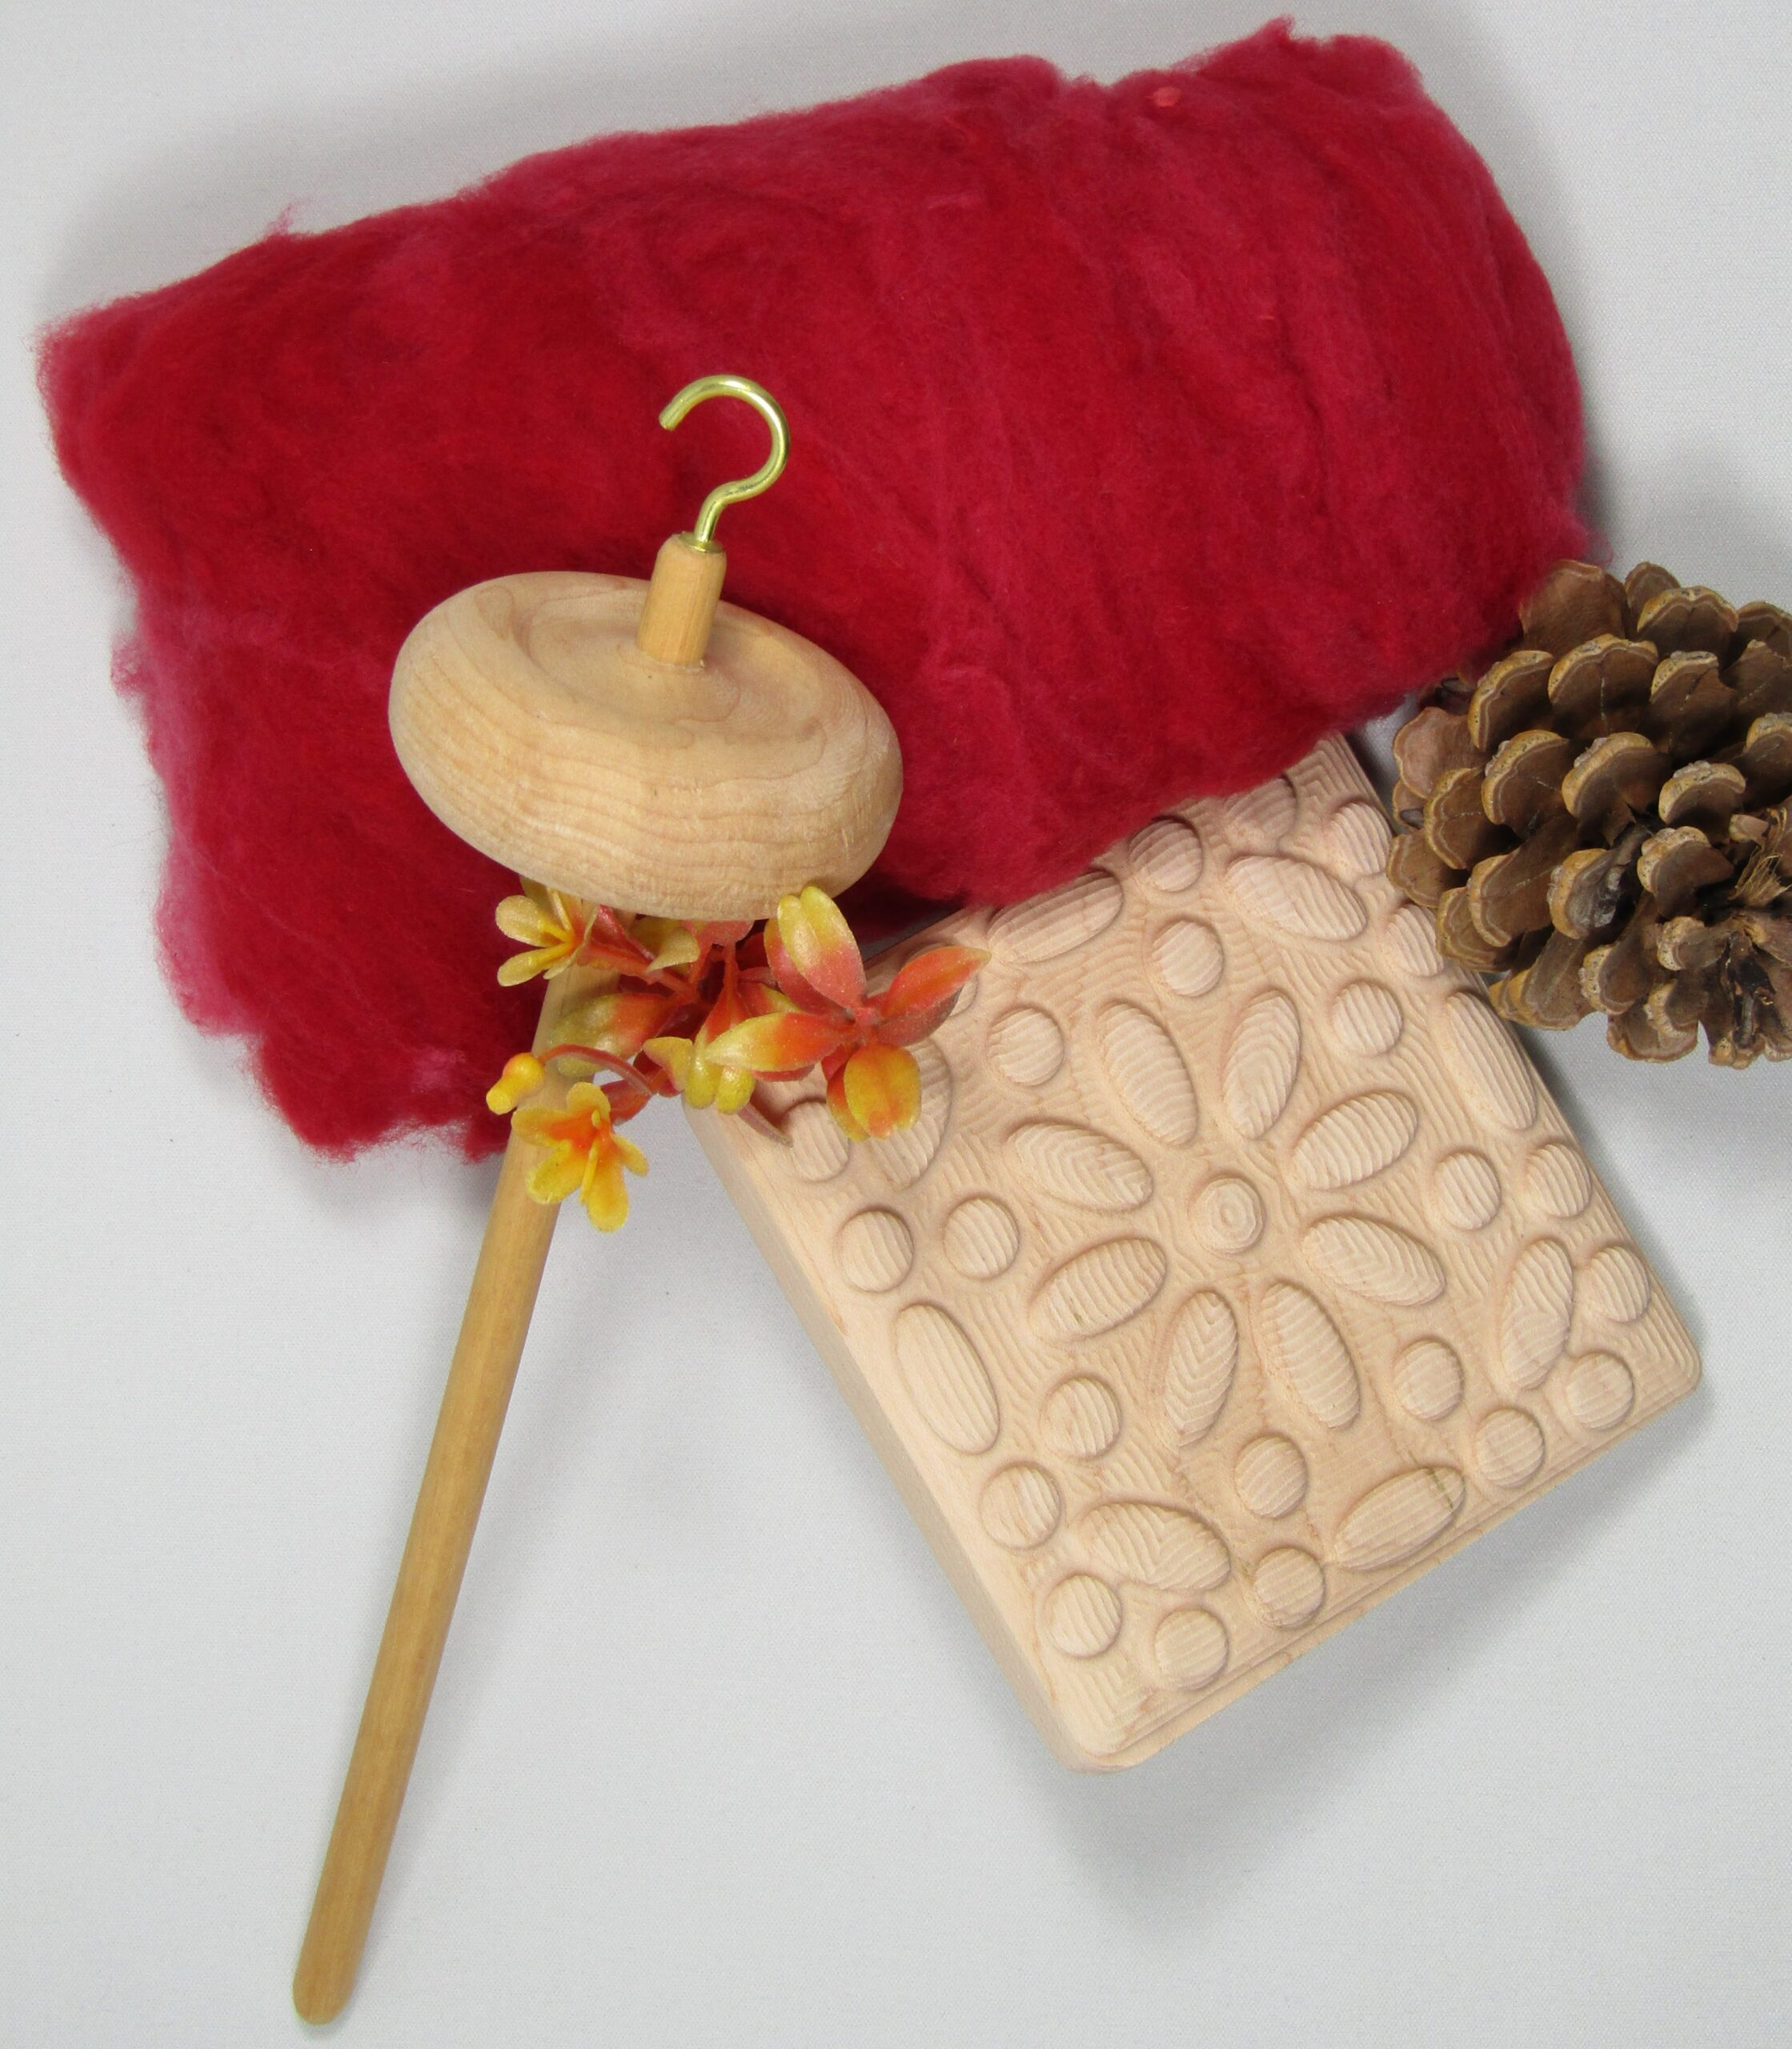 A wood drop spindle, red wool and wood felting tool